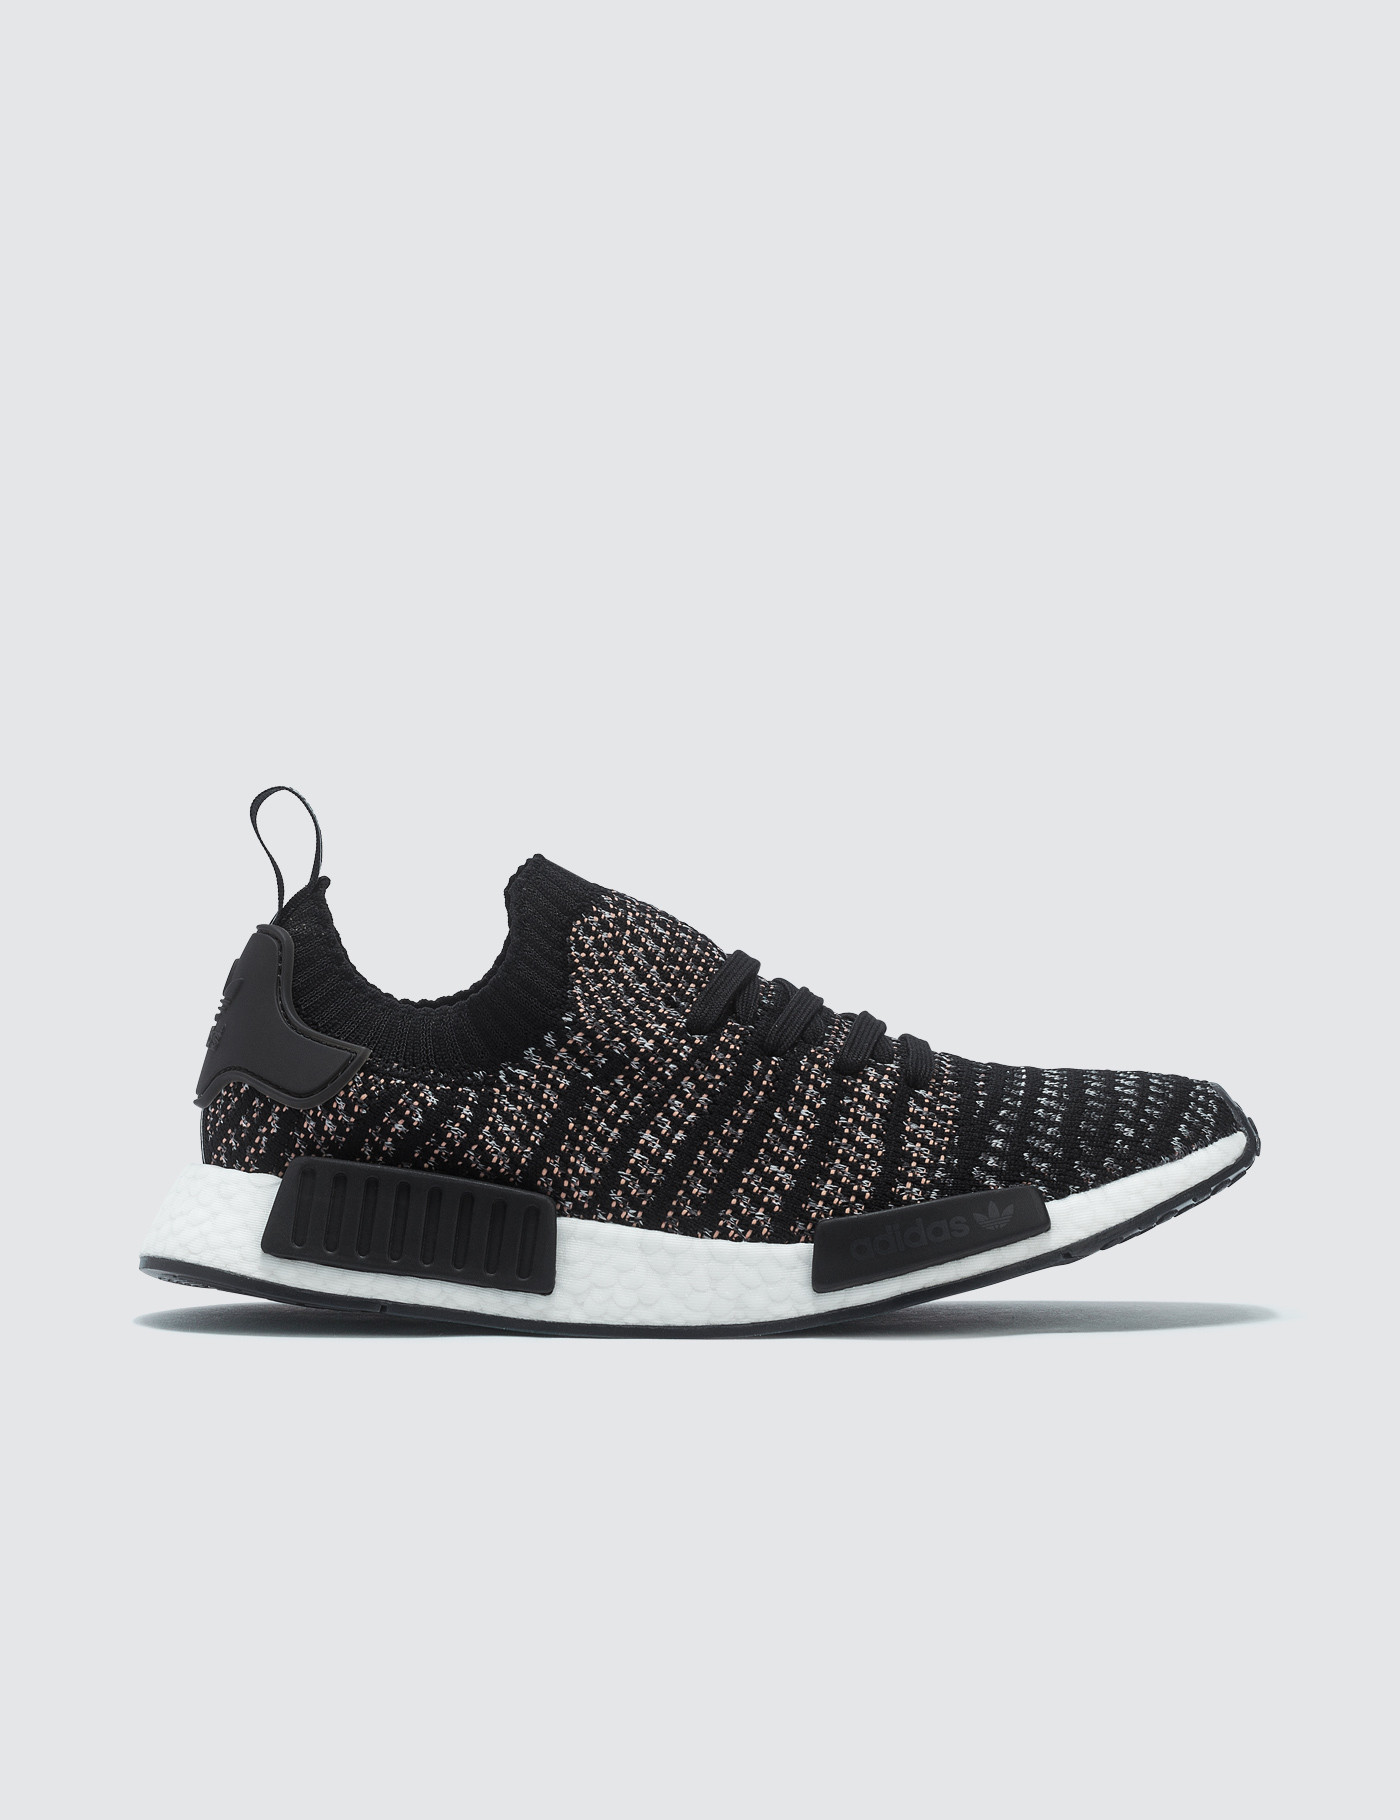 e0385d604 Buy Original Adidas Originals NMD R1 Stlt Primeknit at Indonesia ...